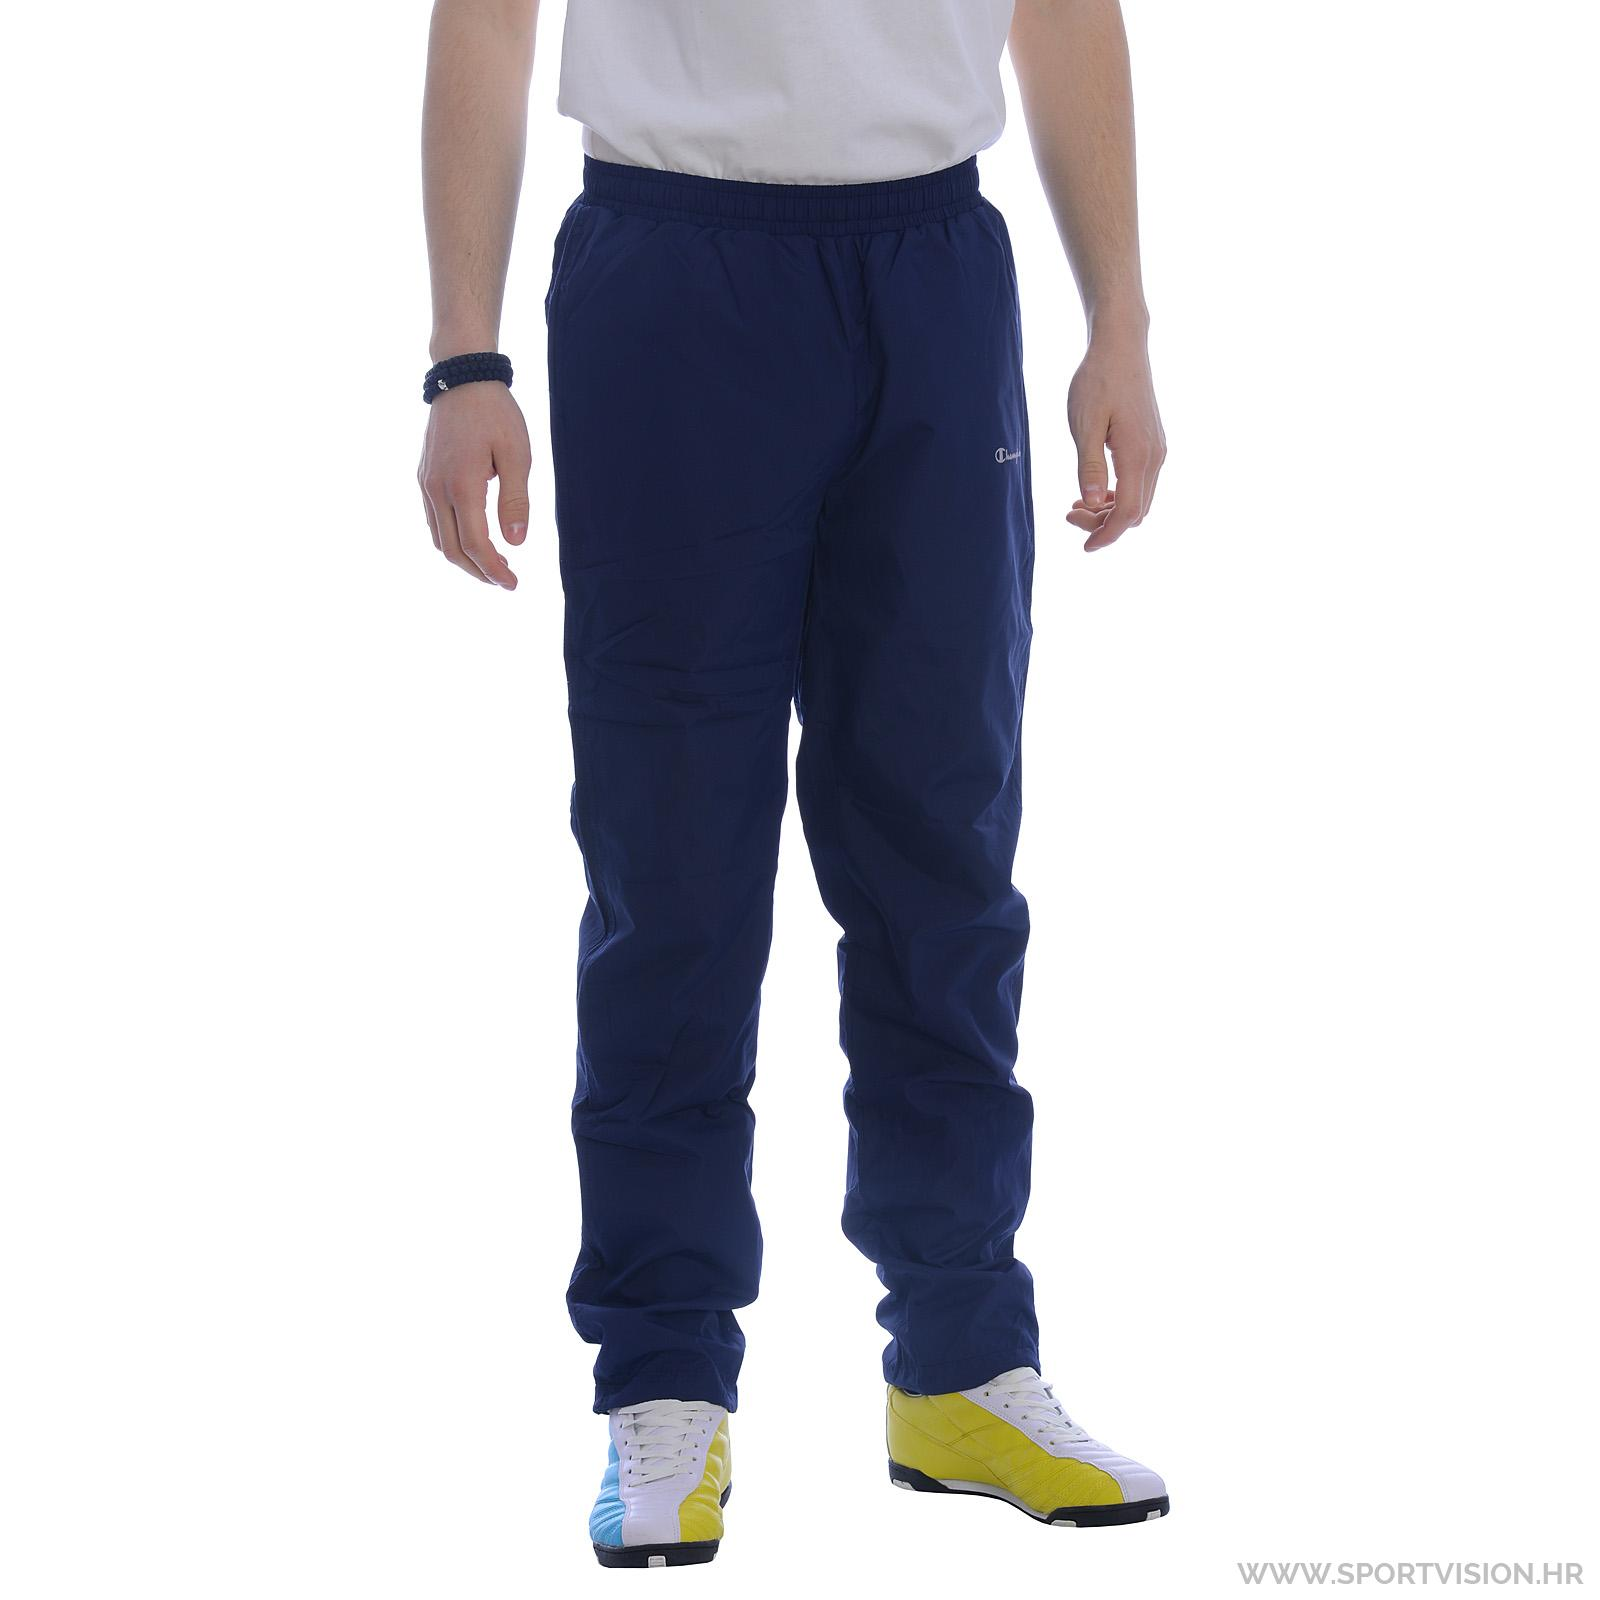 Mens Nylon Pants 109